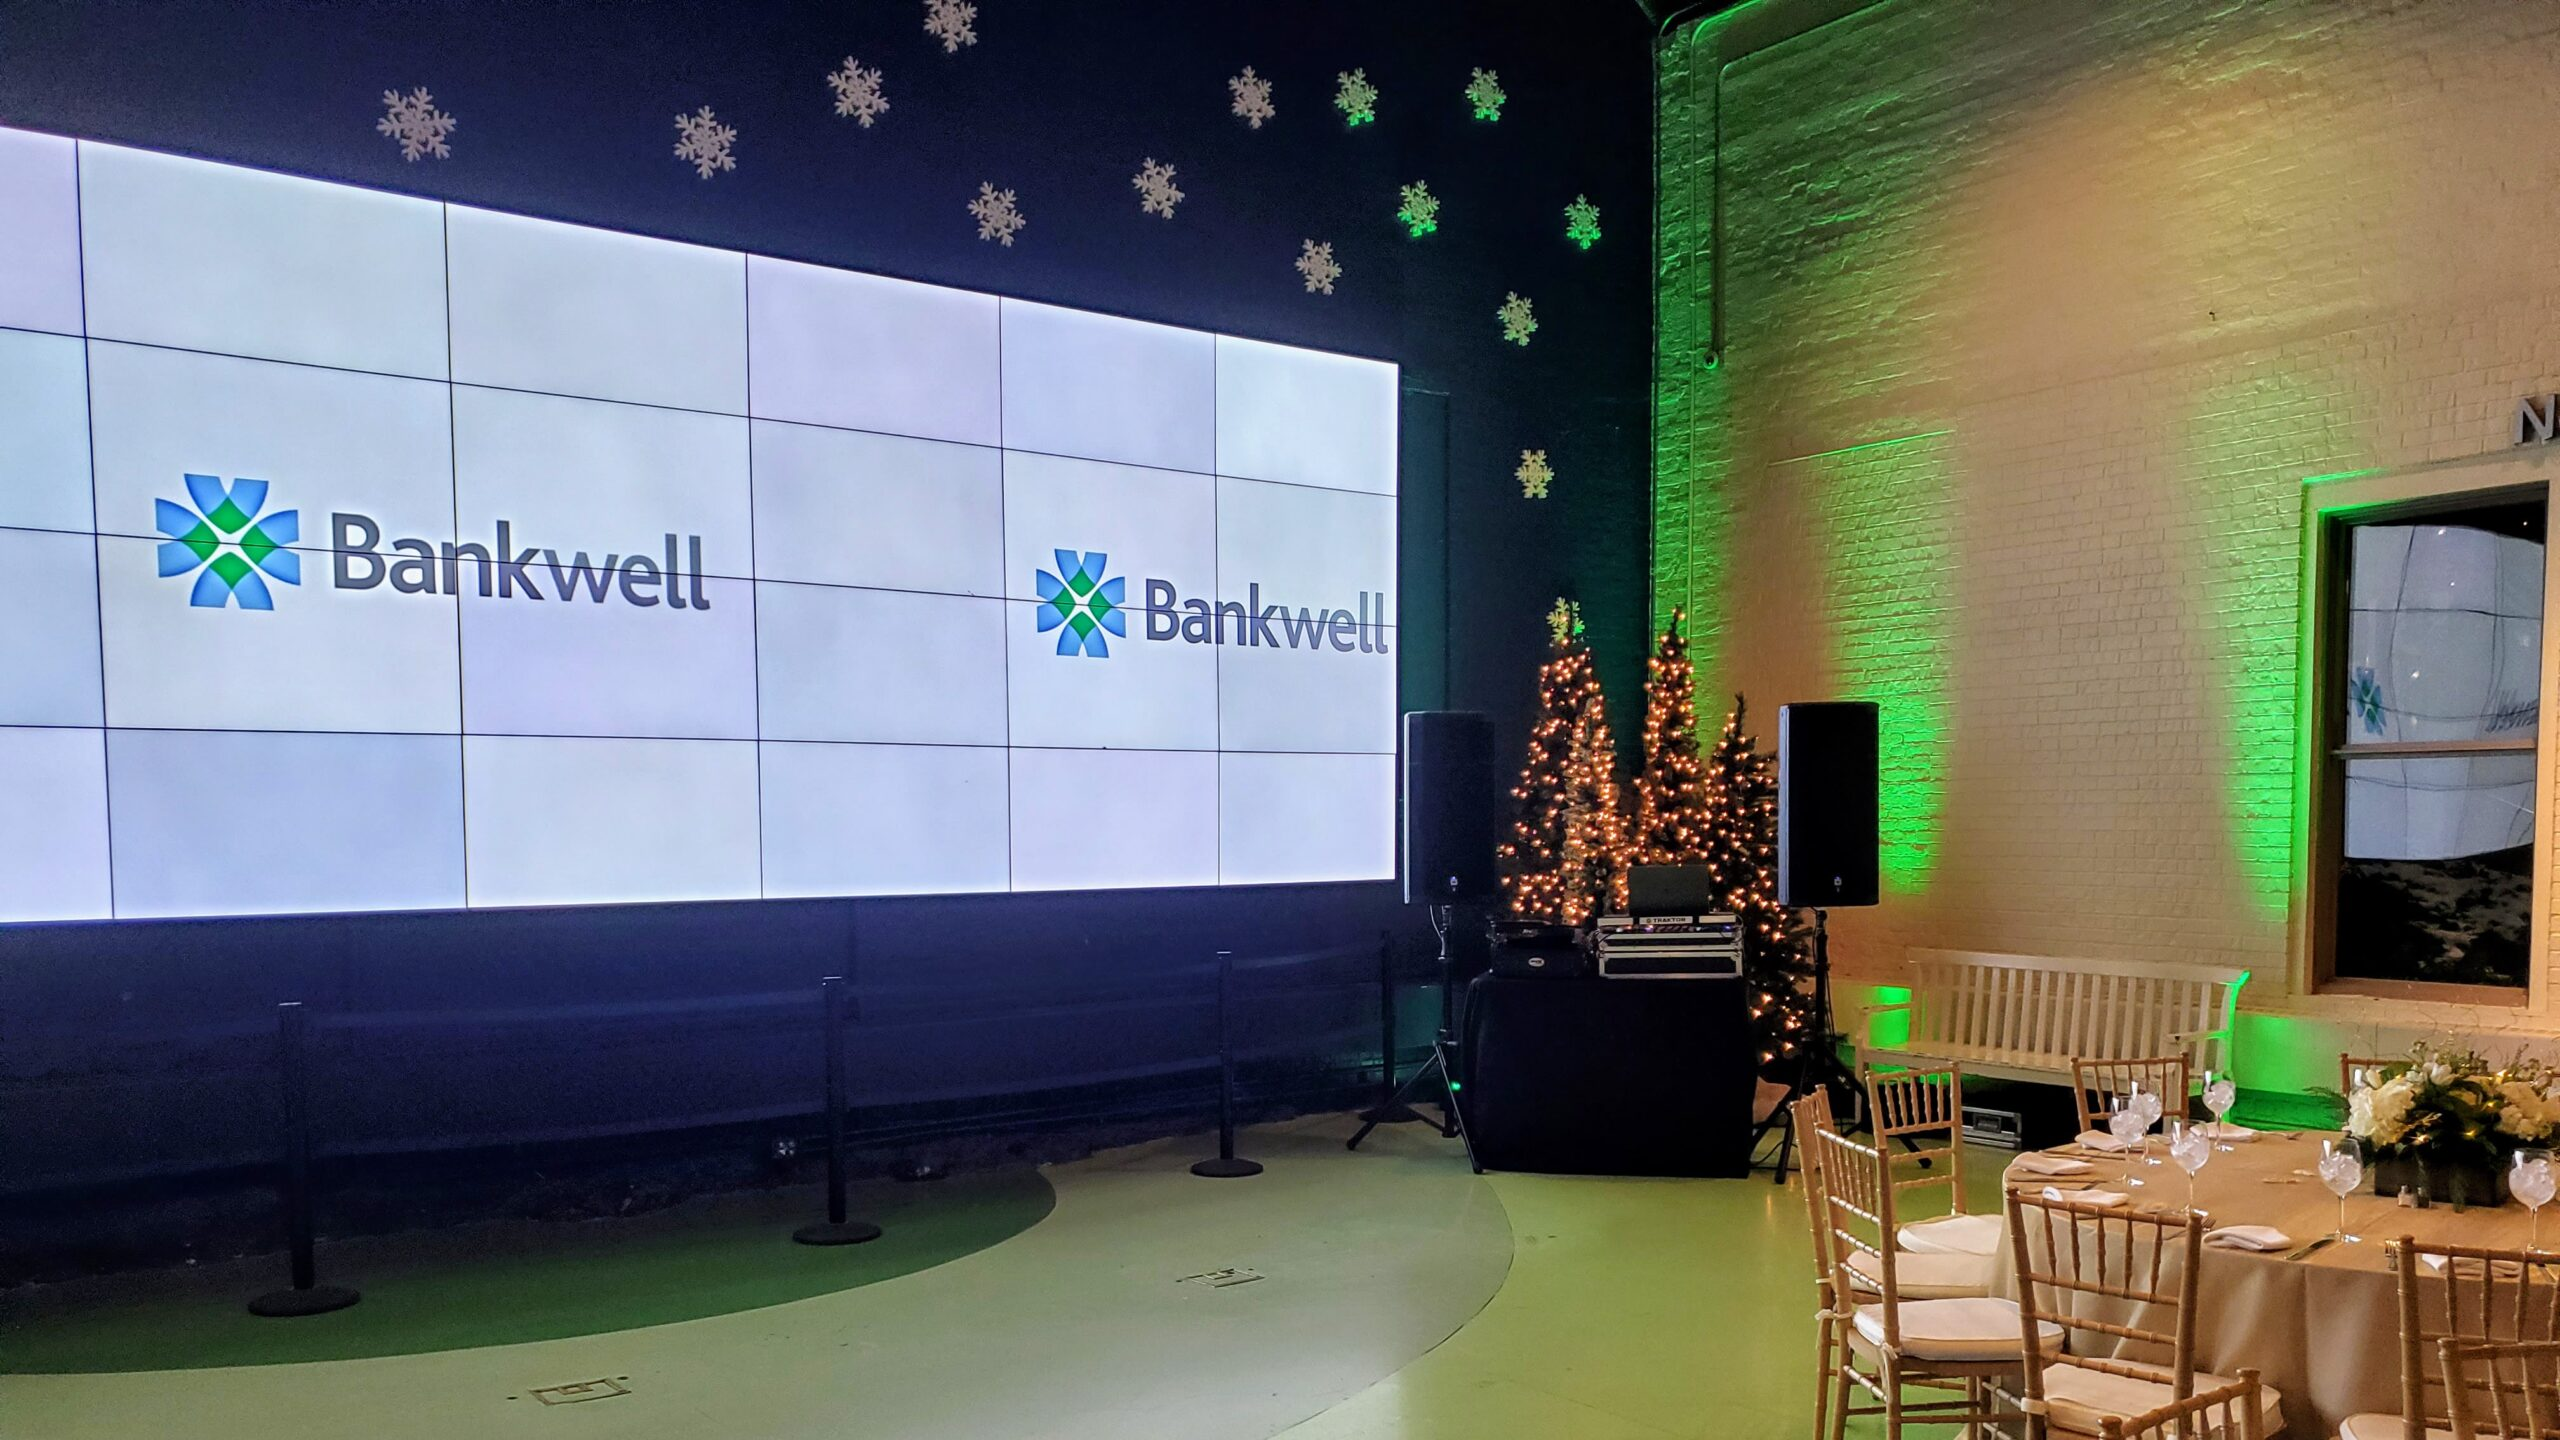 Video wall at Maritime Aquarium in Norwalk at a holiday party for Bankwell with logo